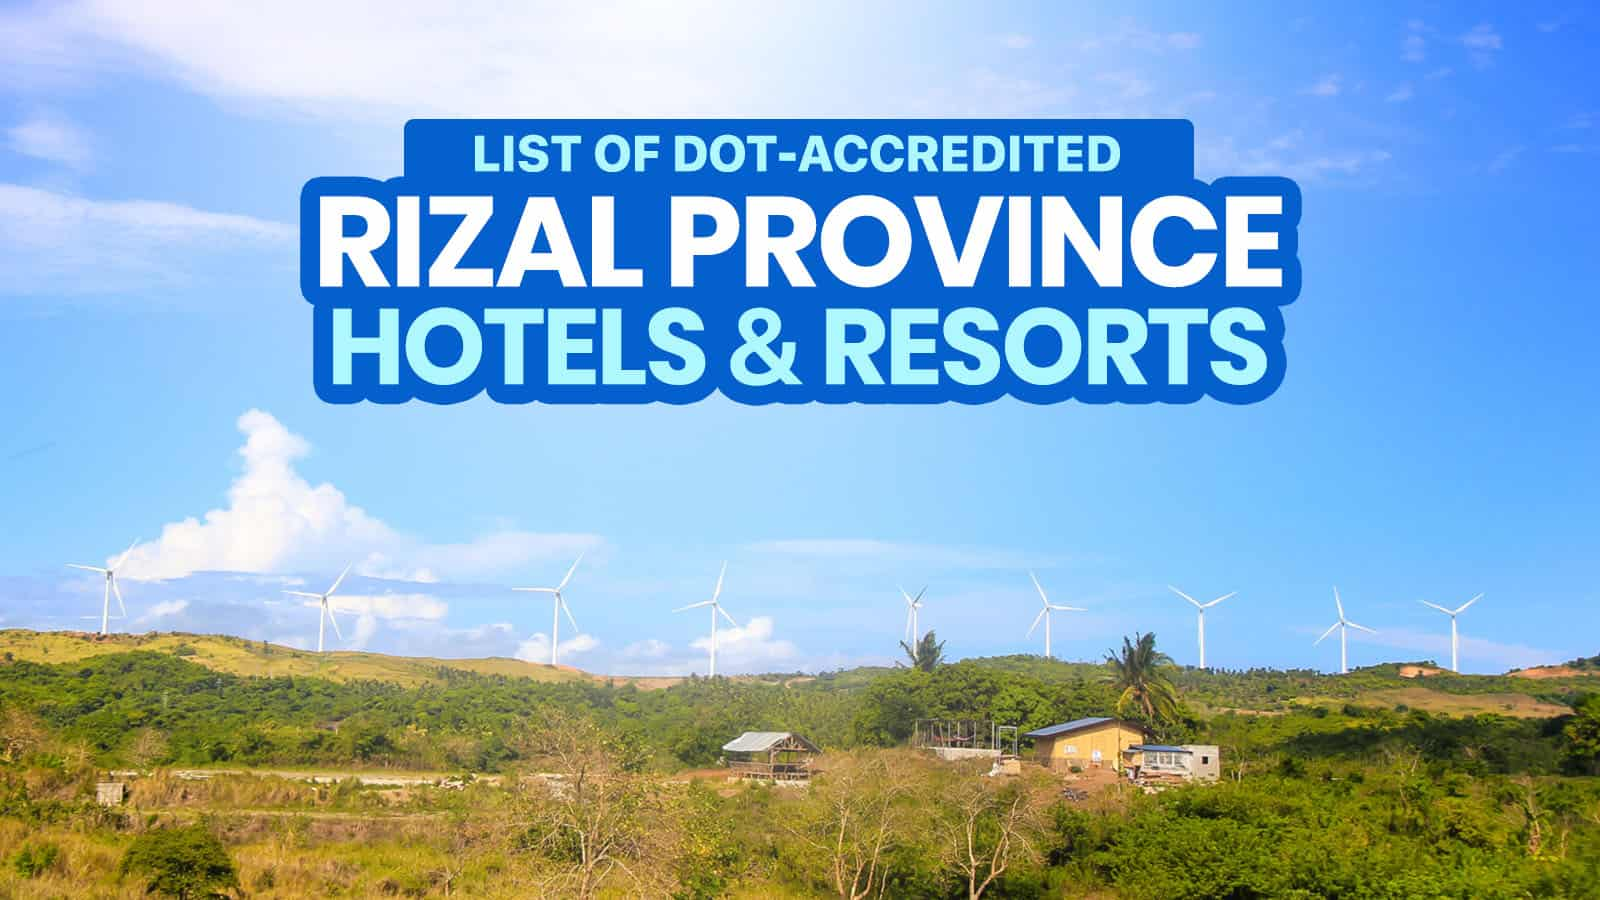 11 DOT-Accredited Hotels & Resorts in RIZAL (Antipolo, Tanay, San Mateo & More!) — (Open Now or Soon)